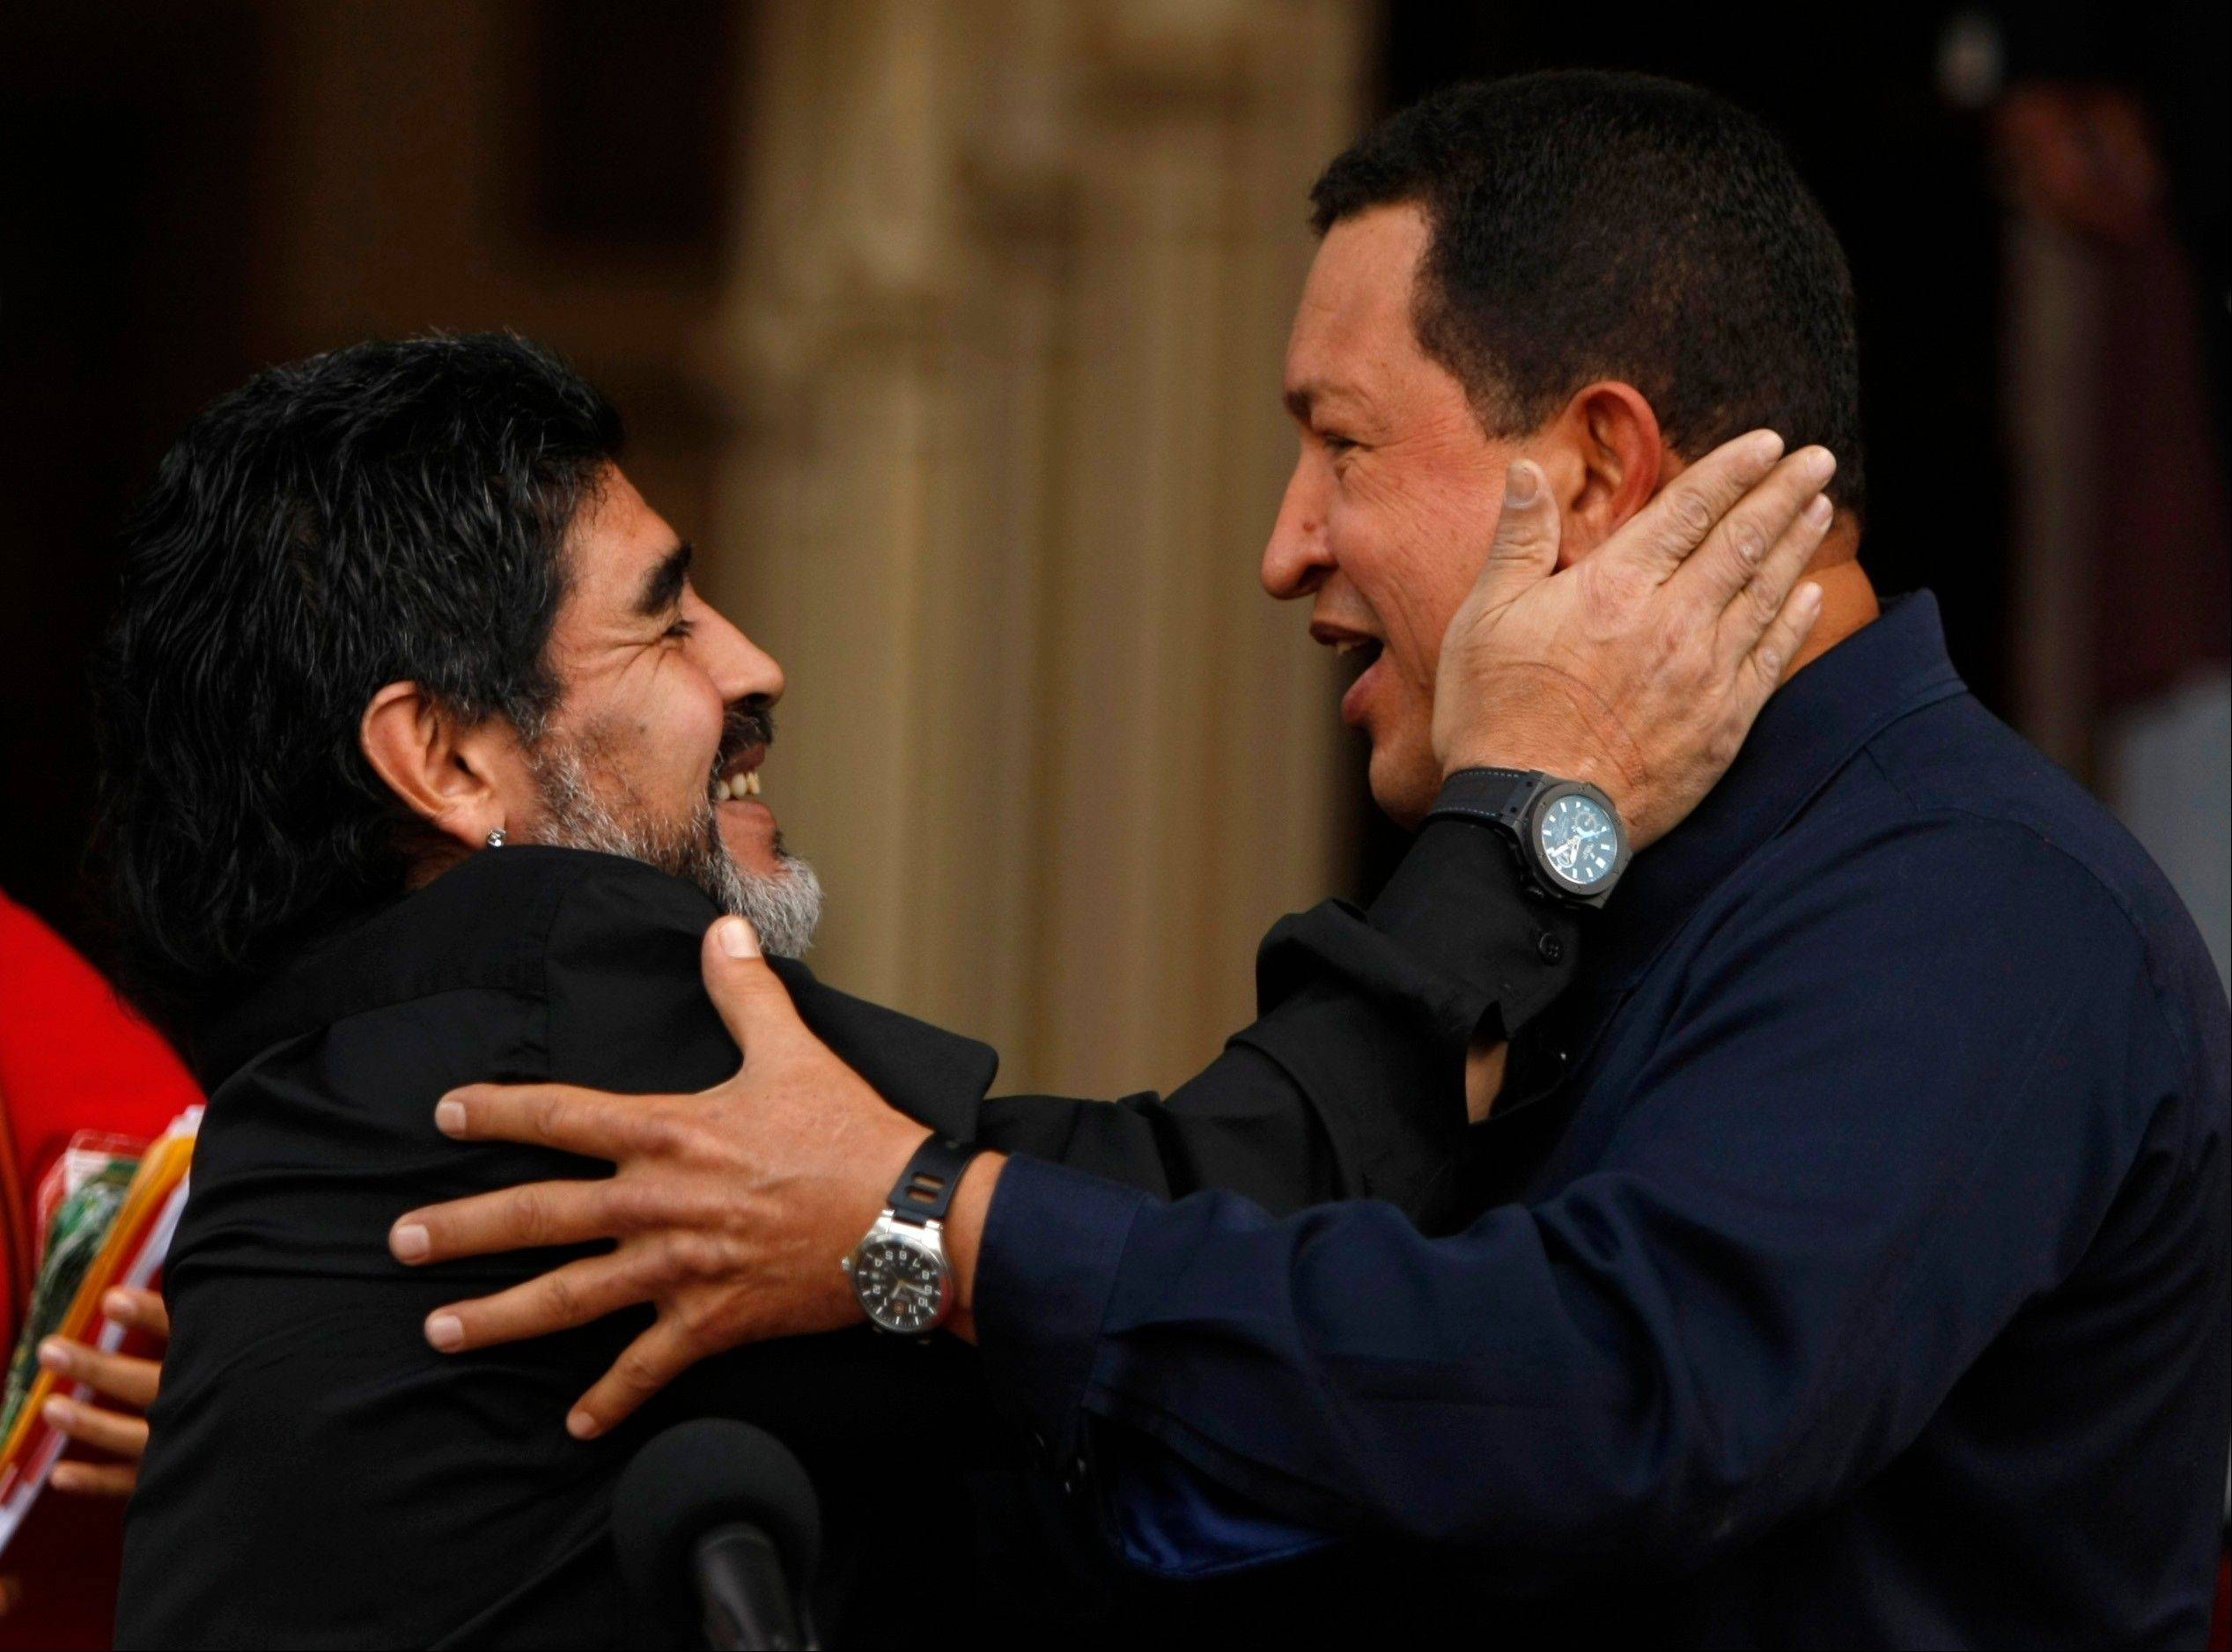 In this July 22, 2010, file photo, Venezuela's President Hugo Chavez, right, and Argentina's national soccer team coach Diego Armando Maradona embrace upon Maradona's arrival to Miraflores presidential palace in Caracas, Venezuela.